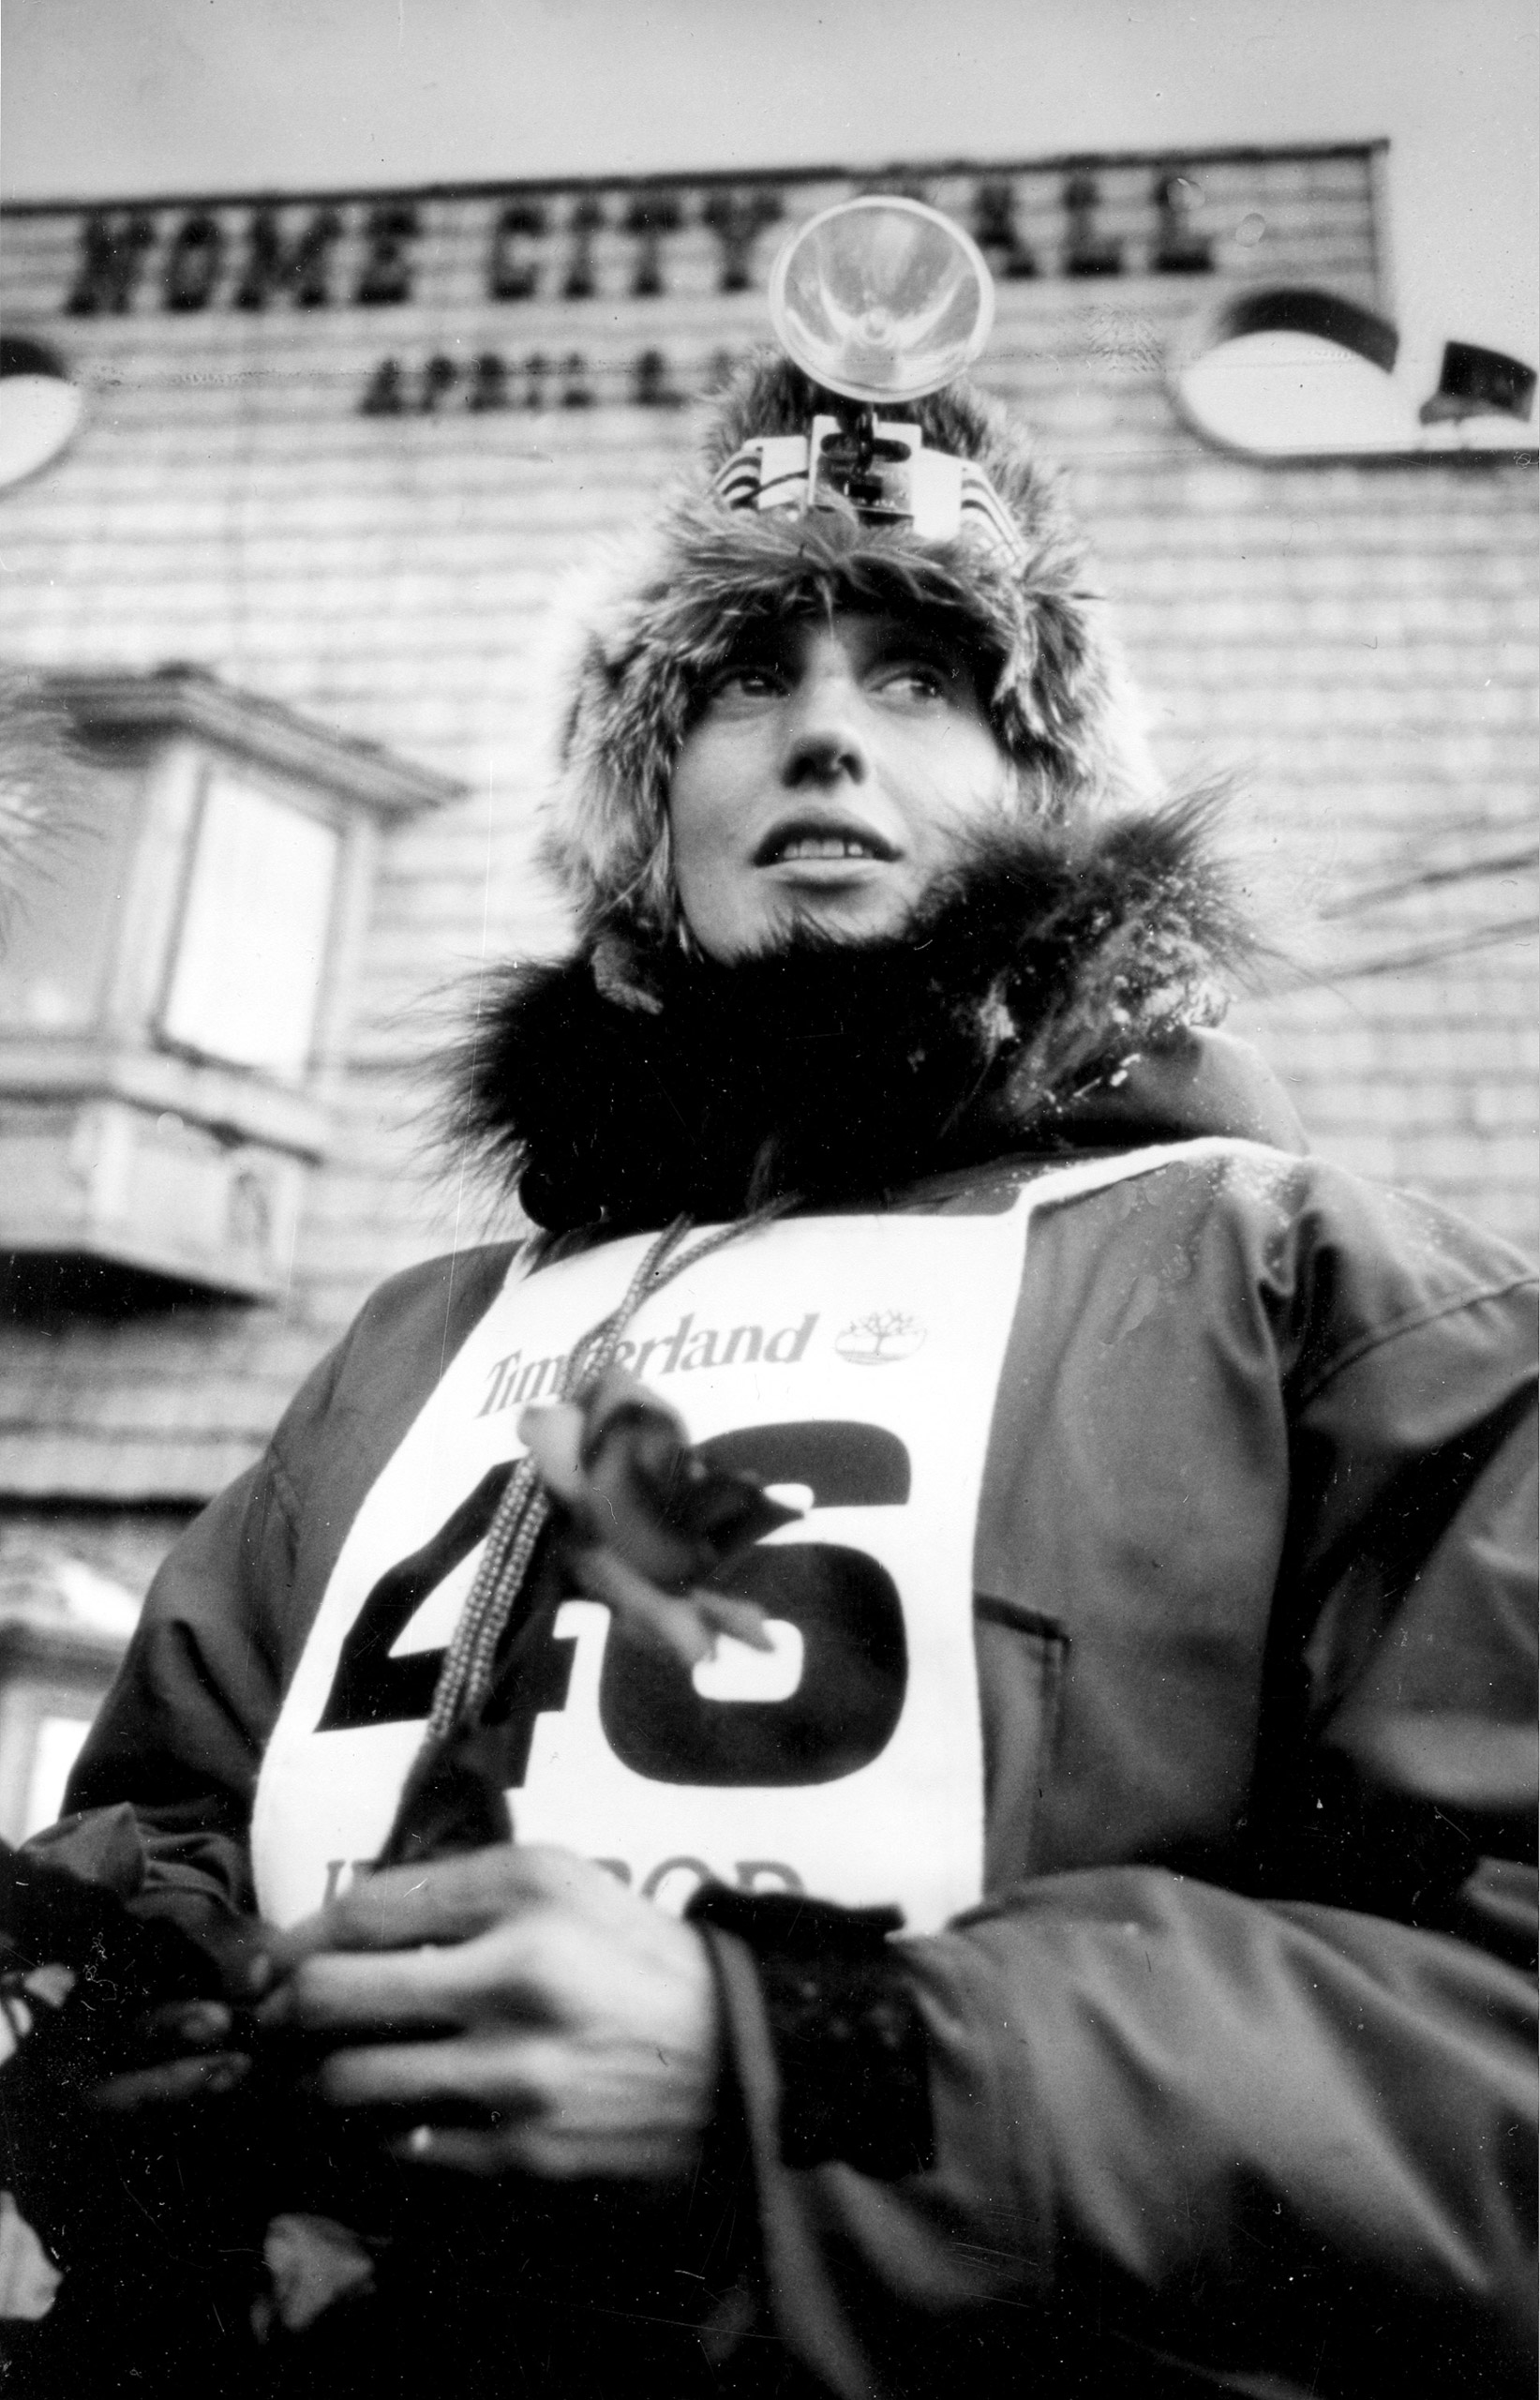 Musher Libby Riddles stands in front of the City Hall at Nome, Alaska, March 20, 1985, shortly after crossing the finish line, thus becoming the first female champion of the Iditarod Trail Sled Dog Race.  Two weeks into the 18-day trek, while her competition opted to sit out a fierce snowstorm,  TIME reported,  the musher from Teller, Alaska, pressed on with her team of 13 dogs.